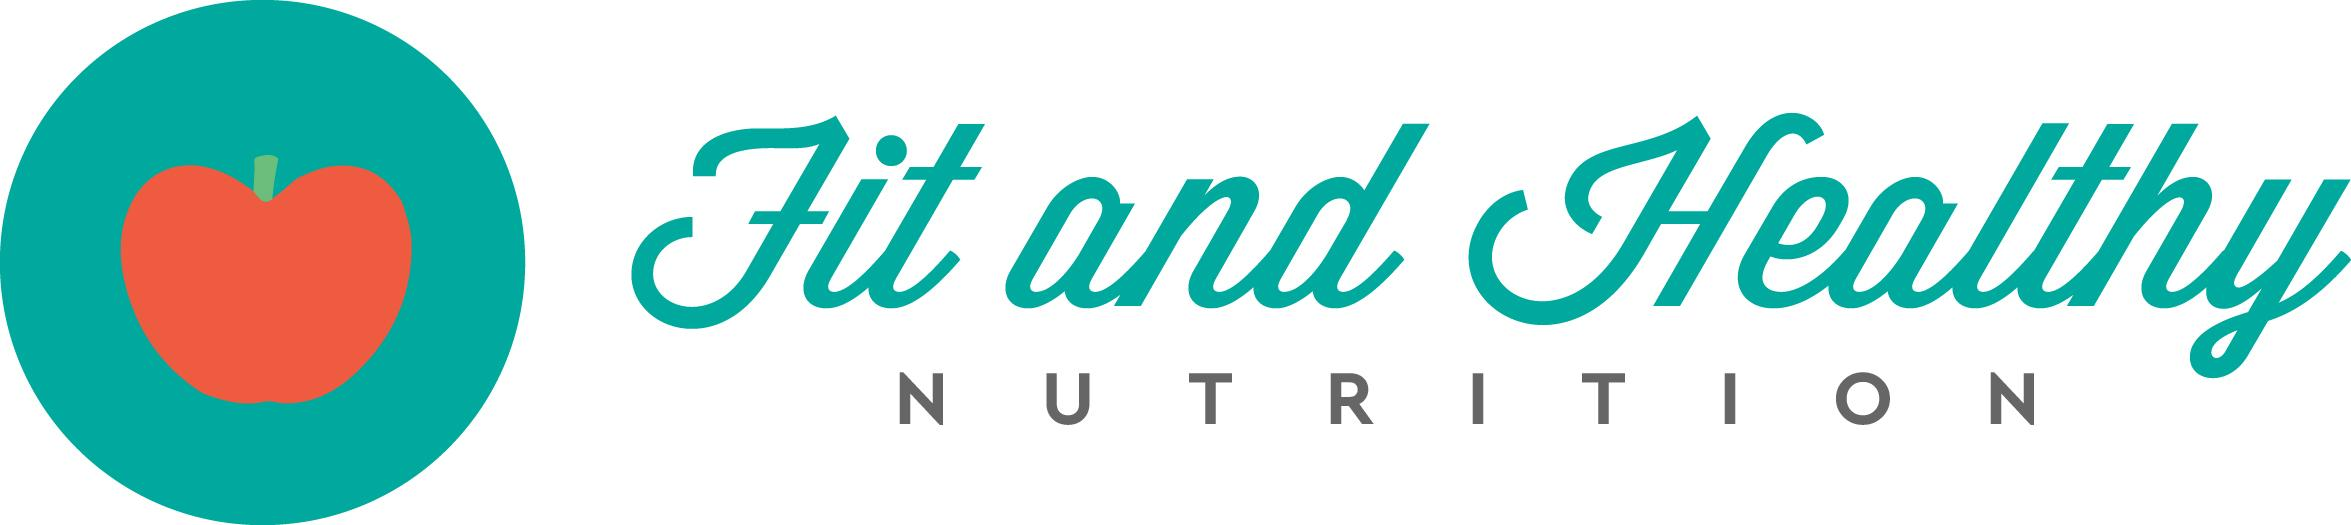 Fit and Healthy Nutrition